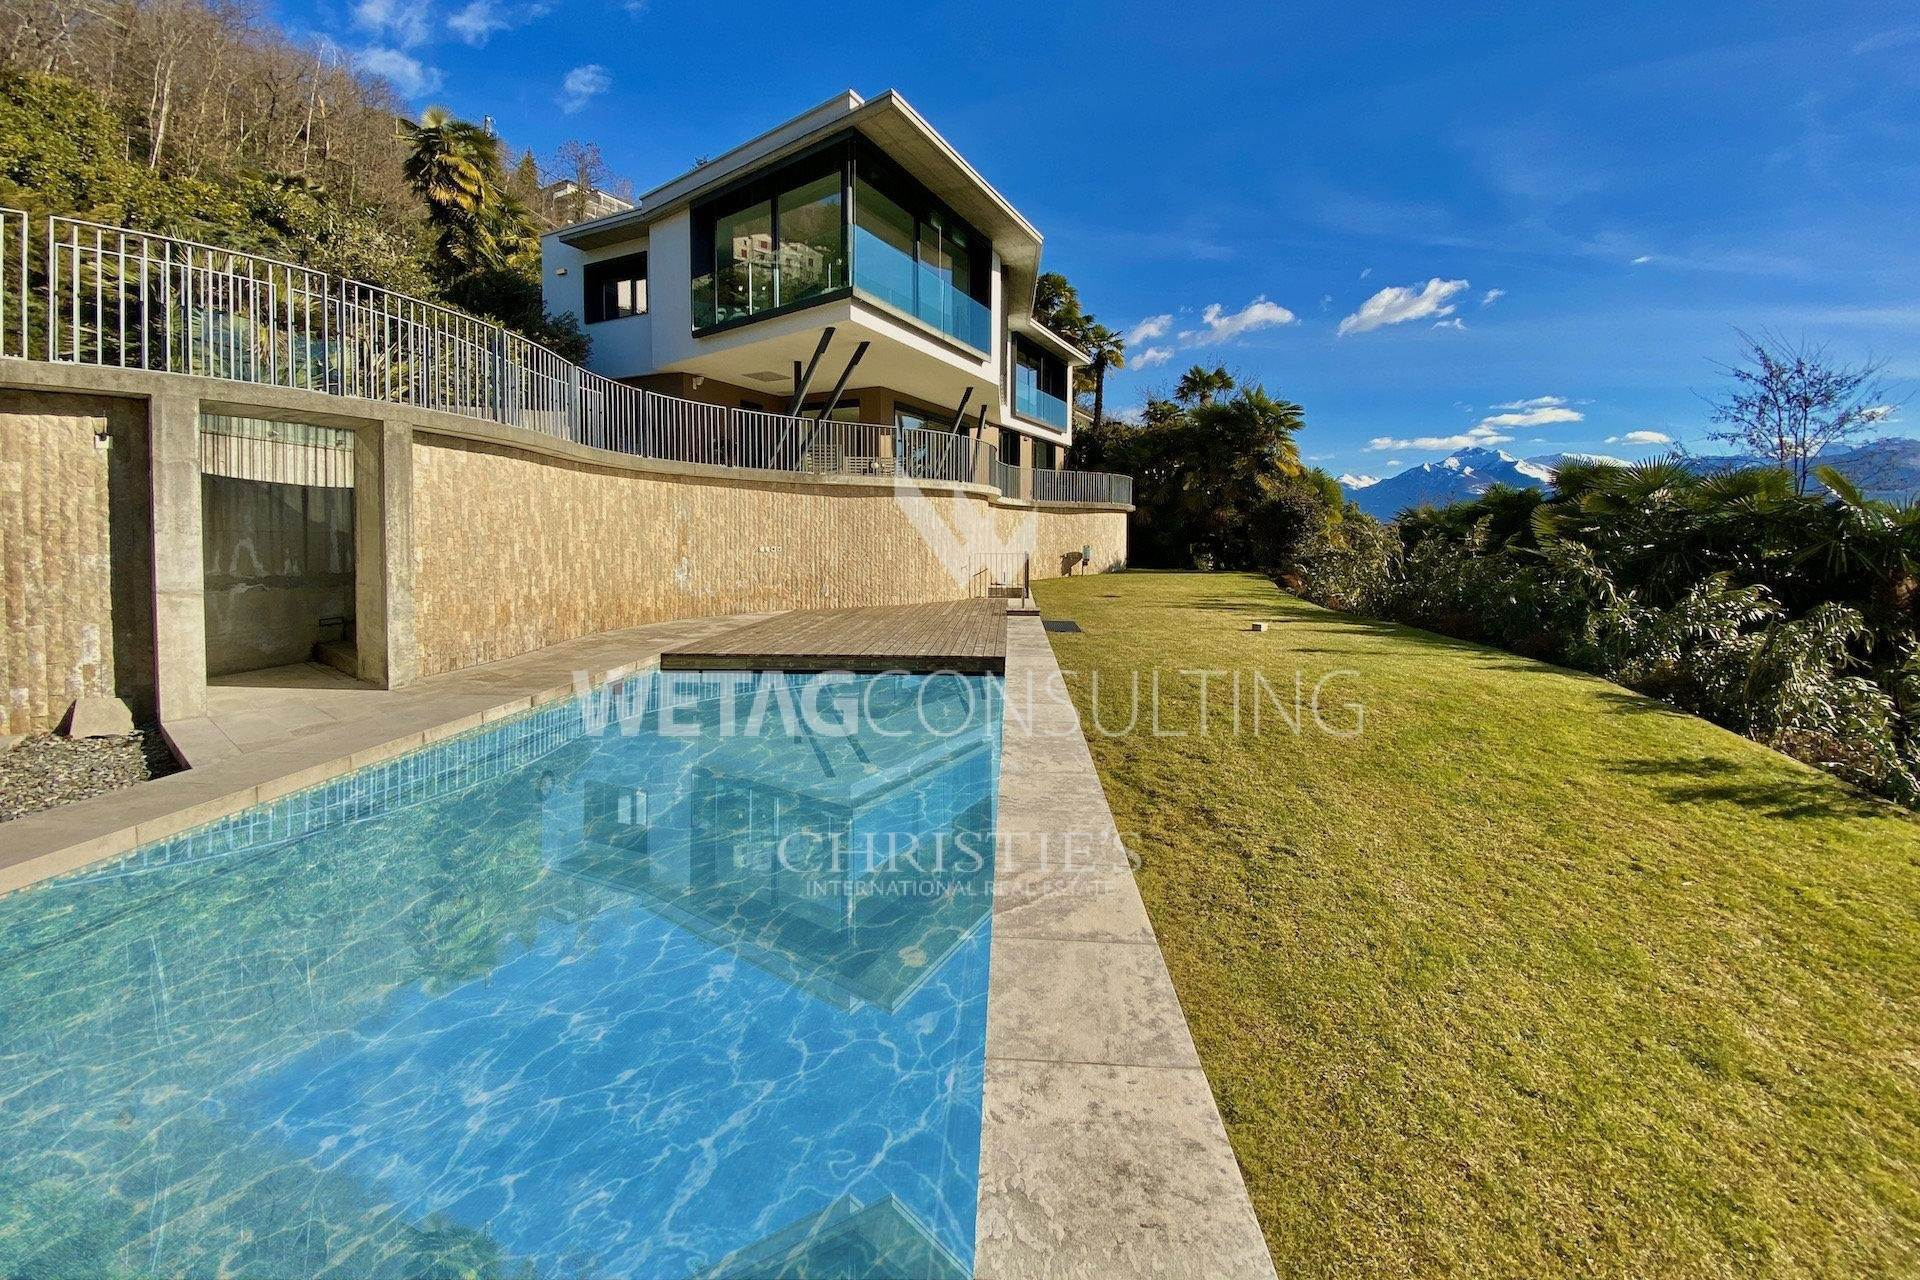 别墅 为 销售 在 Villa for sale in Minusio with scenic Lago Maggiore views 米努肖, 提契诺,6648 瑞士